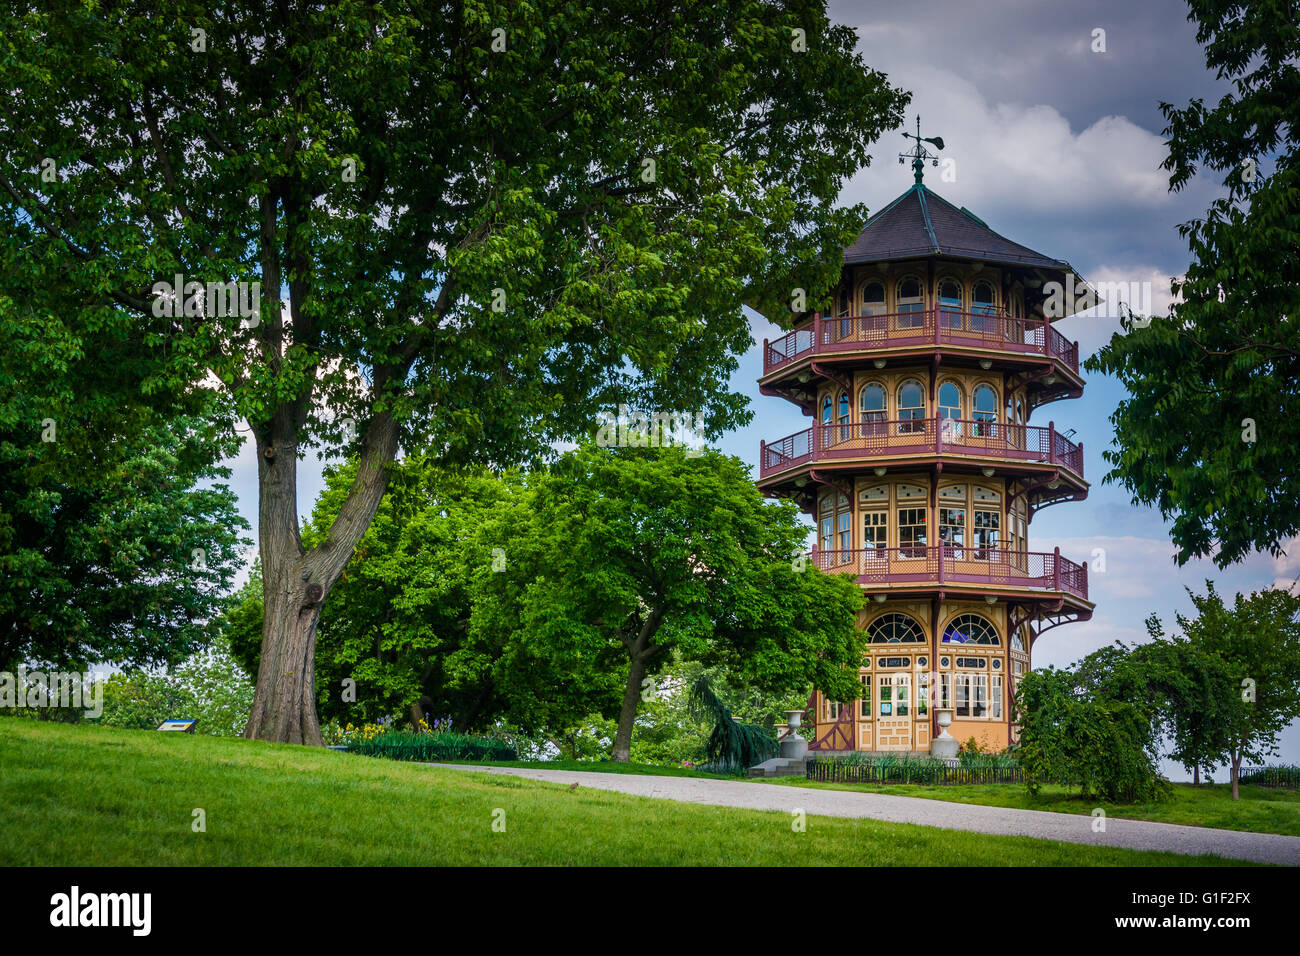 The pagoda at Patterson Park in Baltimore, Maryland. - Stock Image